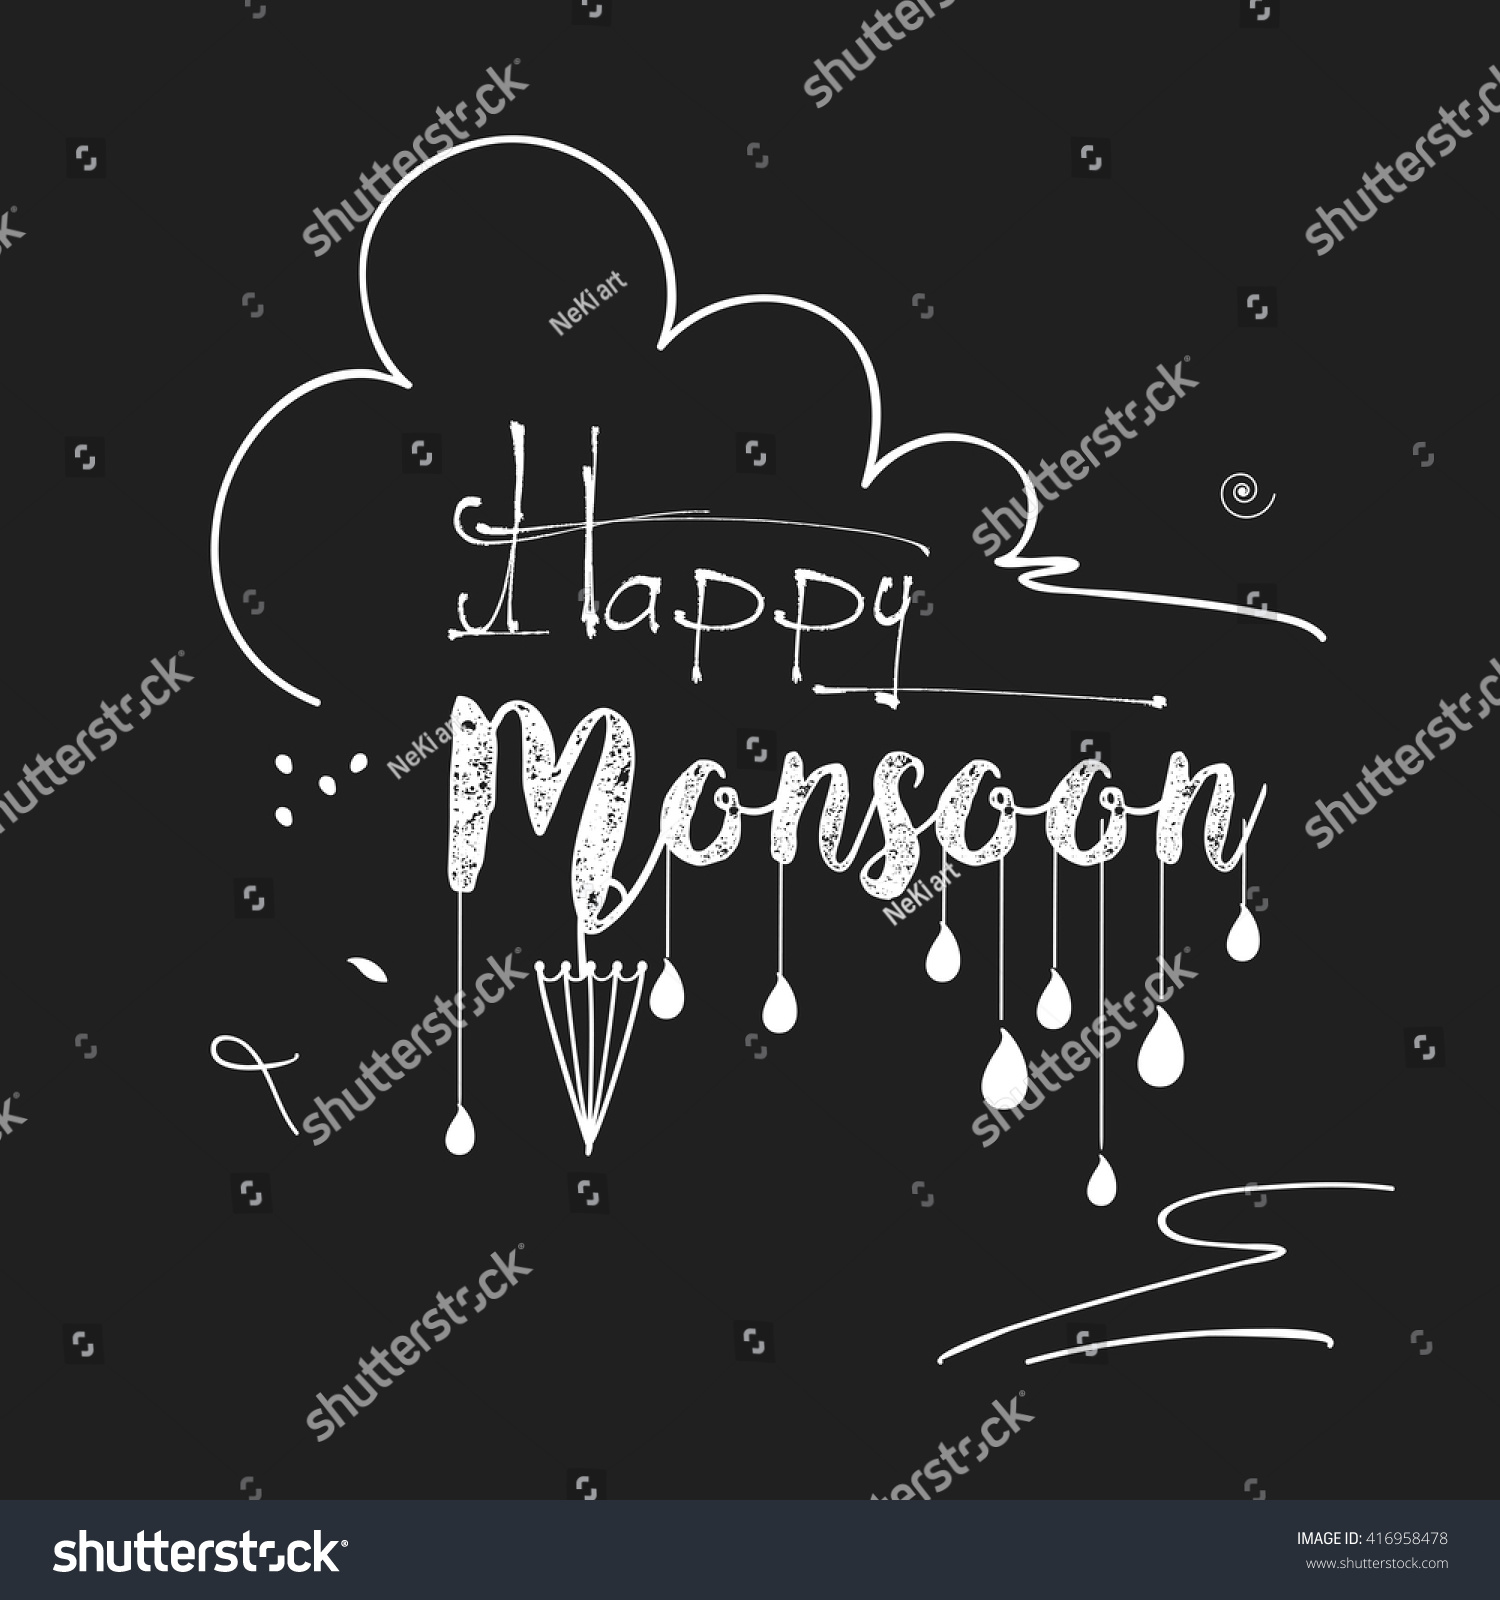 A Few Lines on Monsoon/Rainy season by Chirag | Stanfort ...